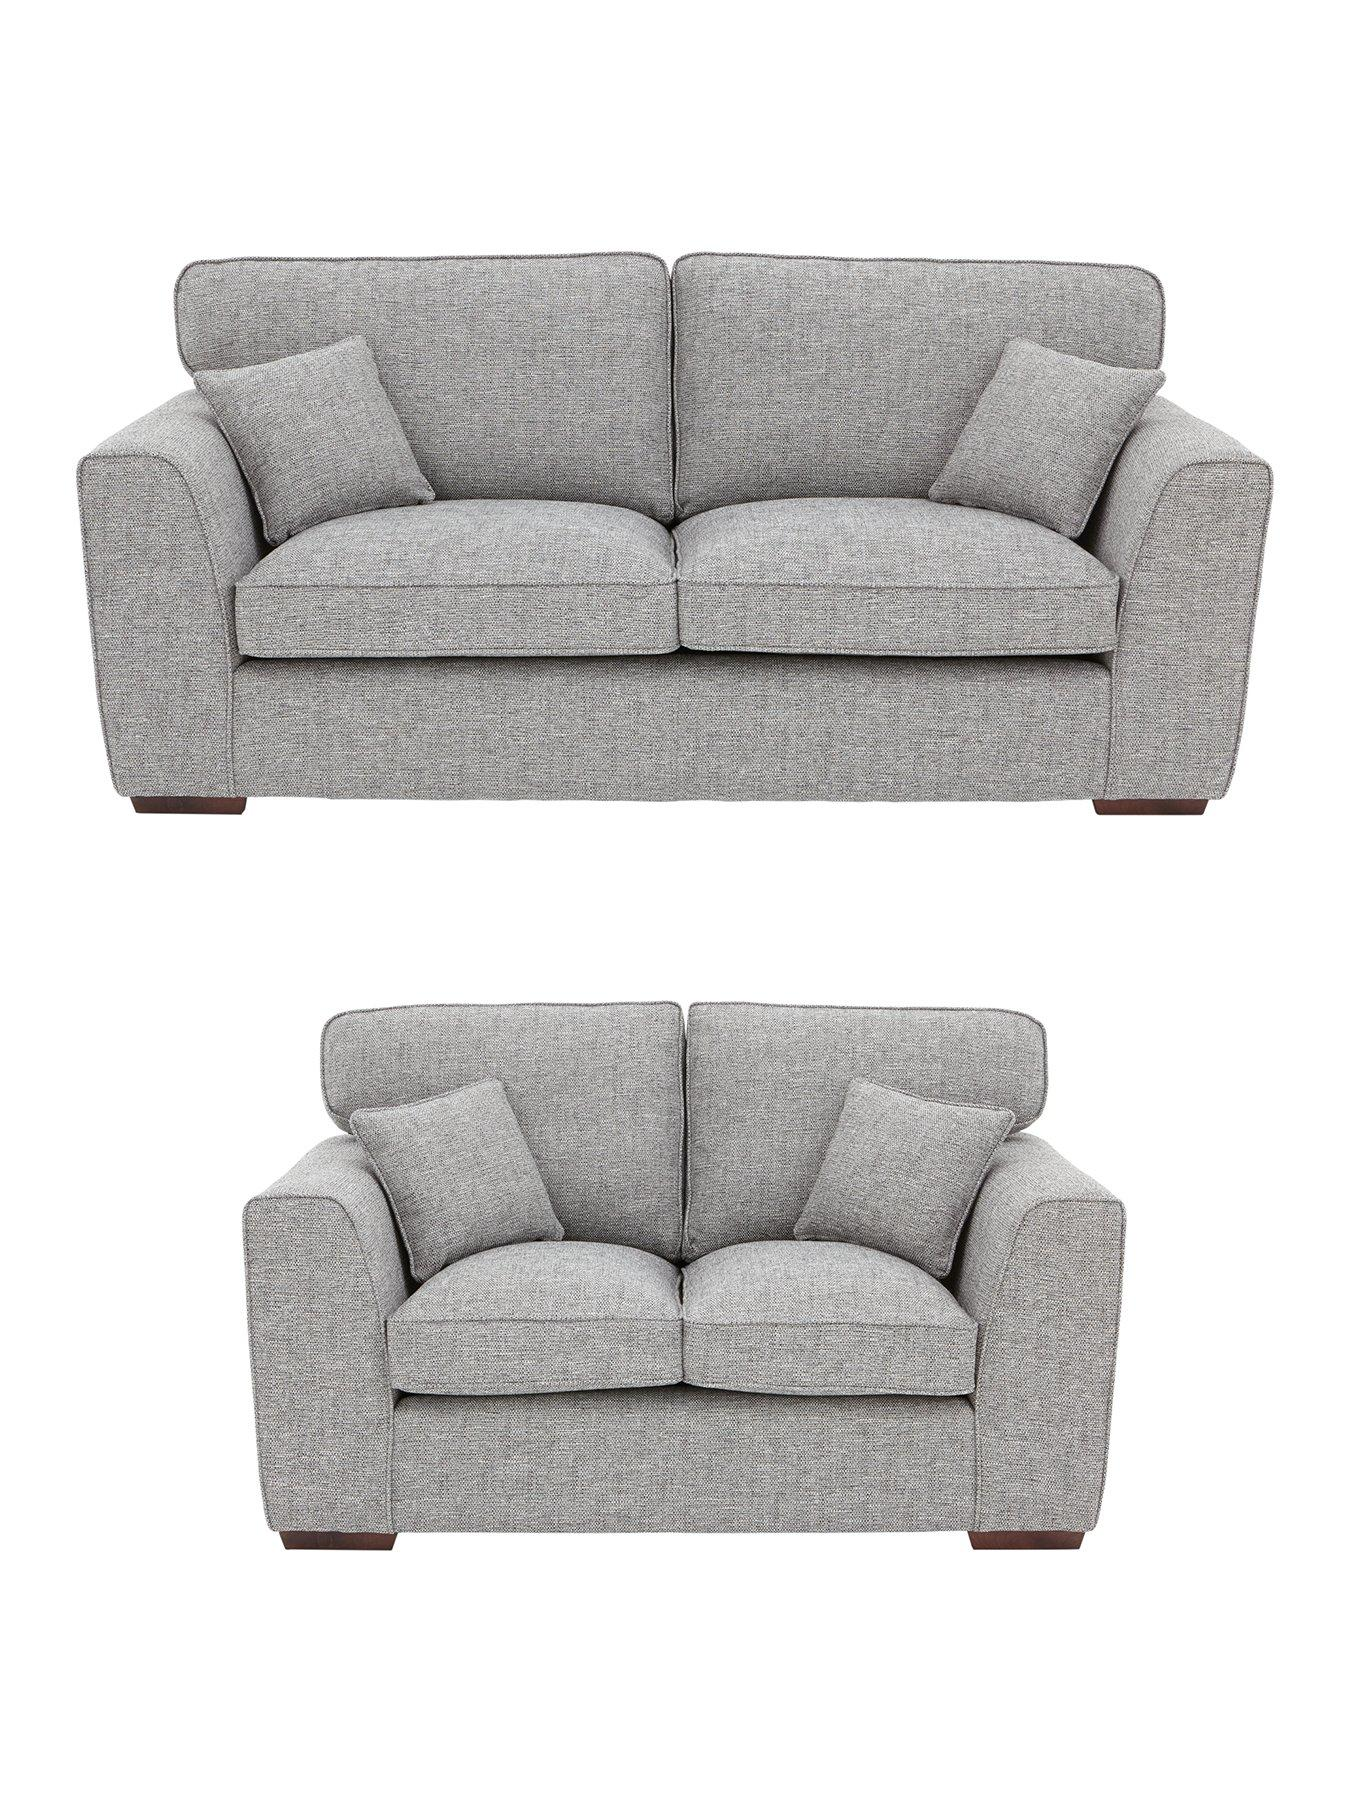 rio 3seater 2seater standard back fabric sofa set buy and save